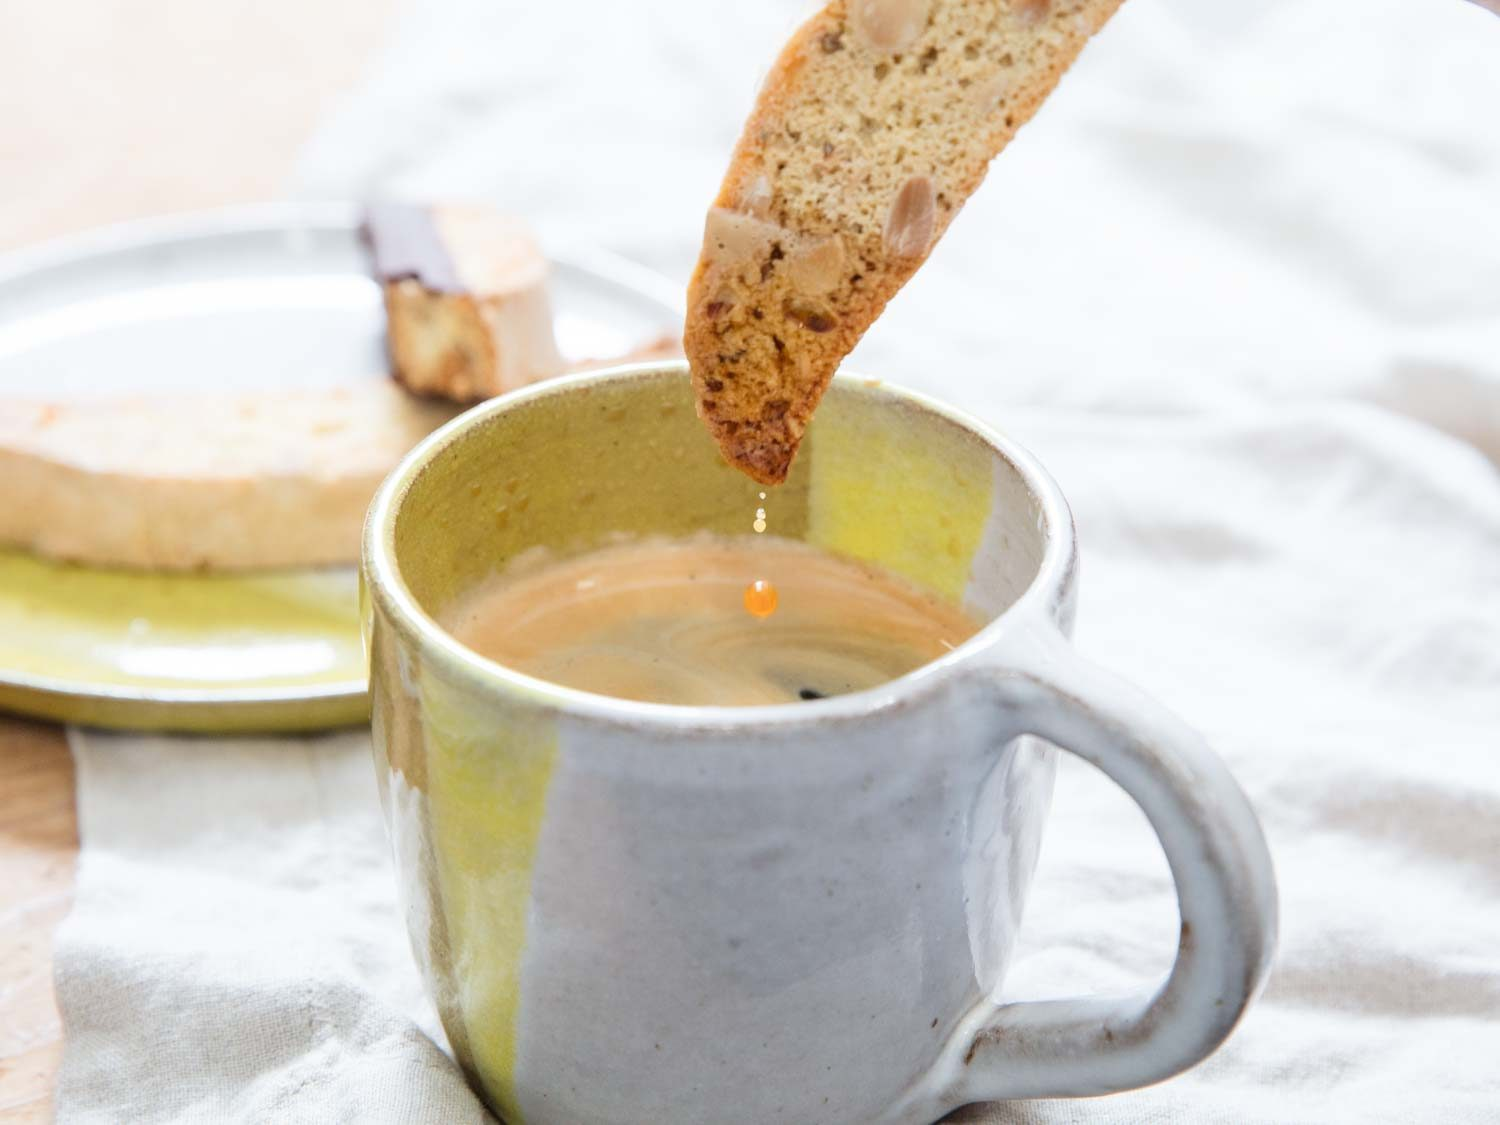 hot cup of coffee with biscotti